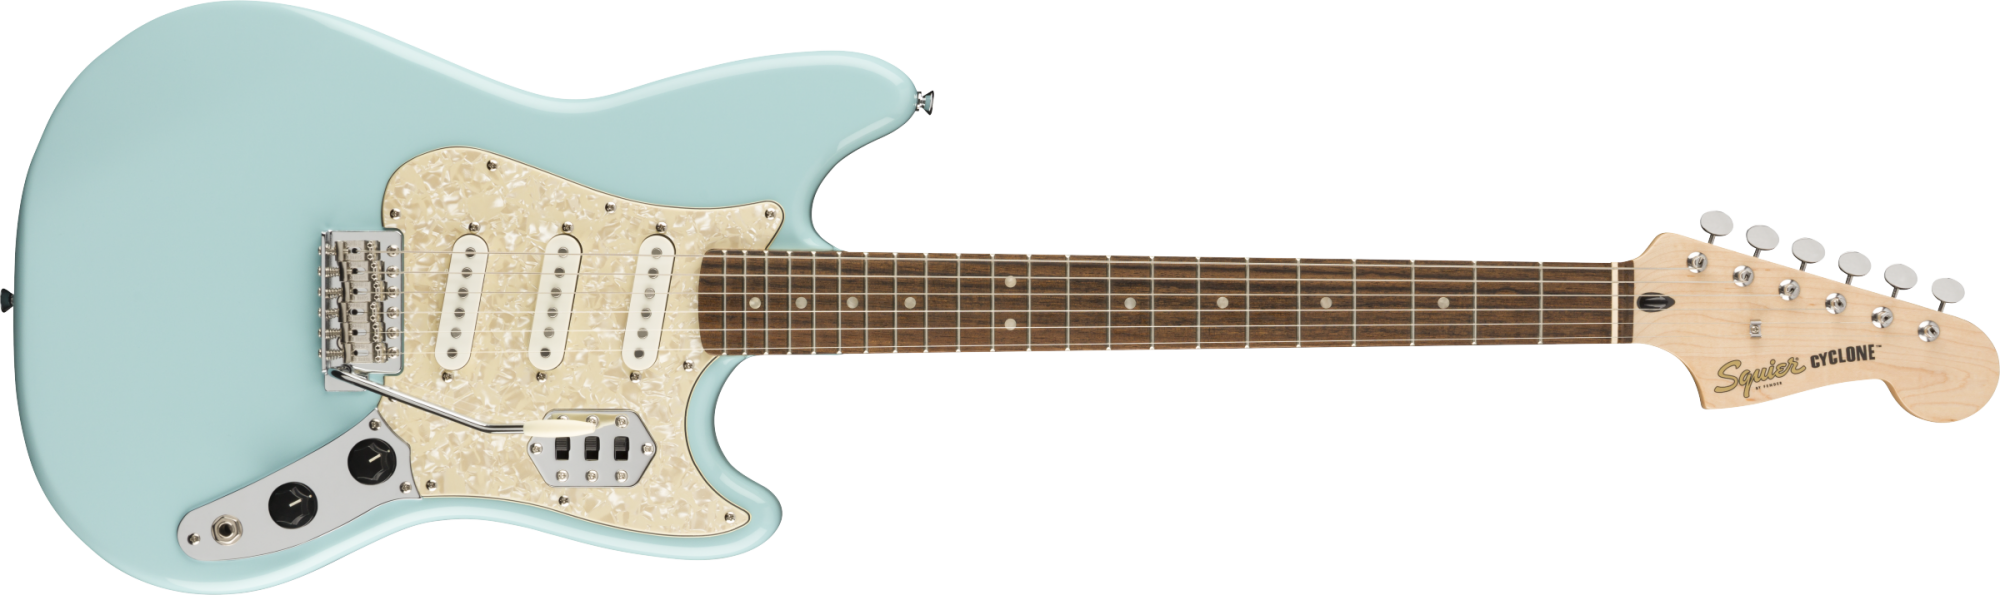 Squier Paranormal Series Cyclone